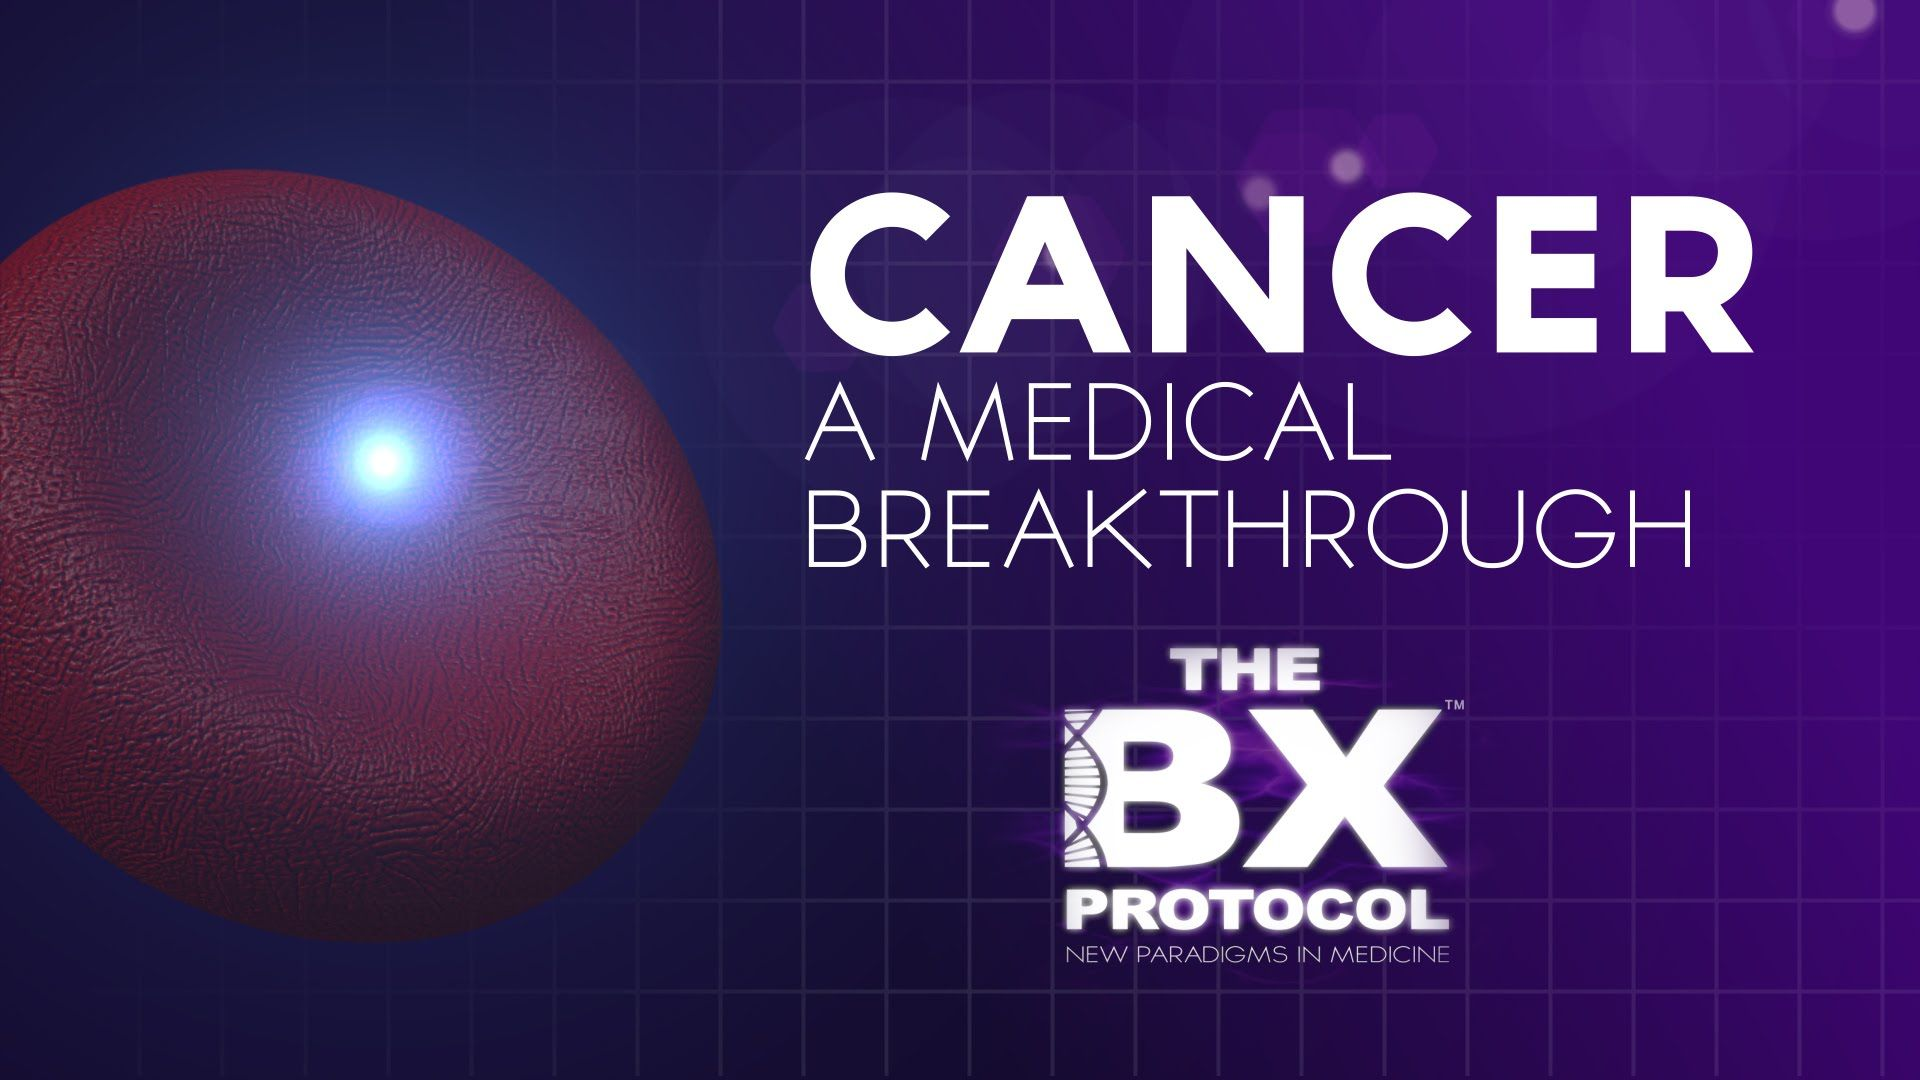 BX Protocol: Cancer... A medical breakthrough Click to watch. View other videos at www.bxprotocol.com